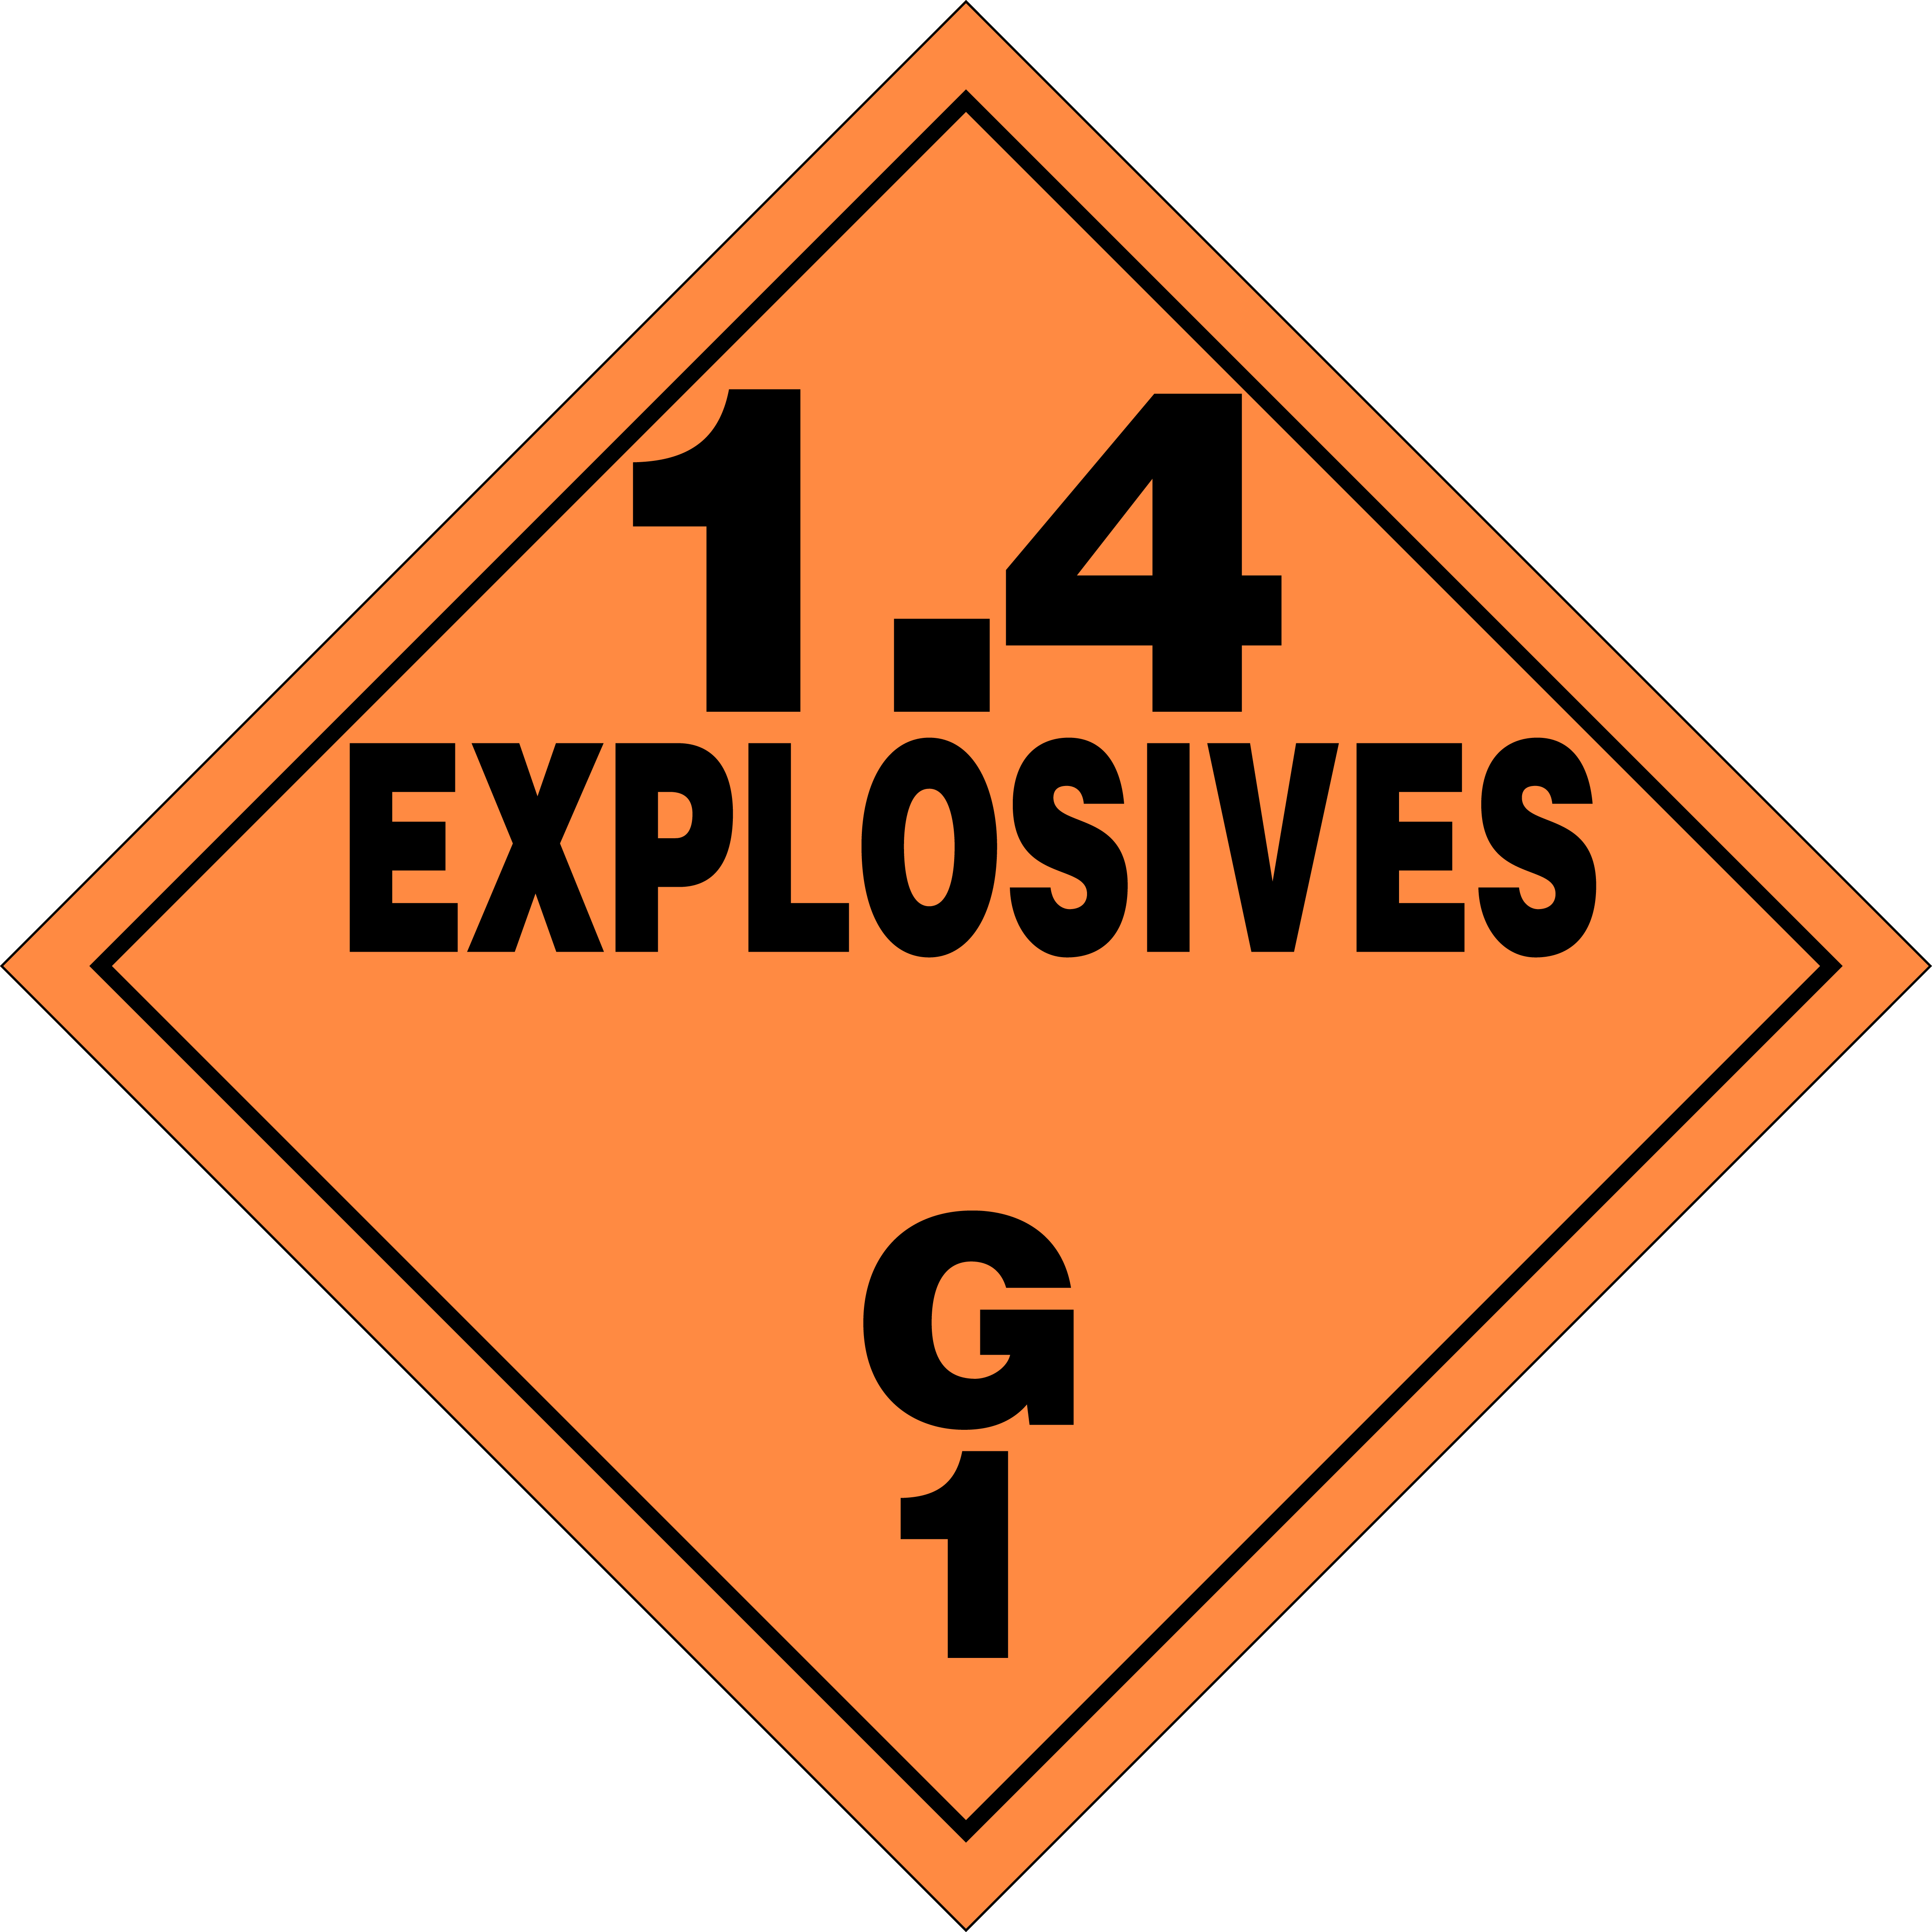 Downloadable Hazmat Placards - Ian-Albert.com